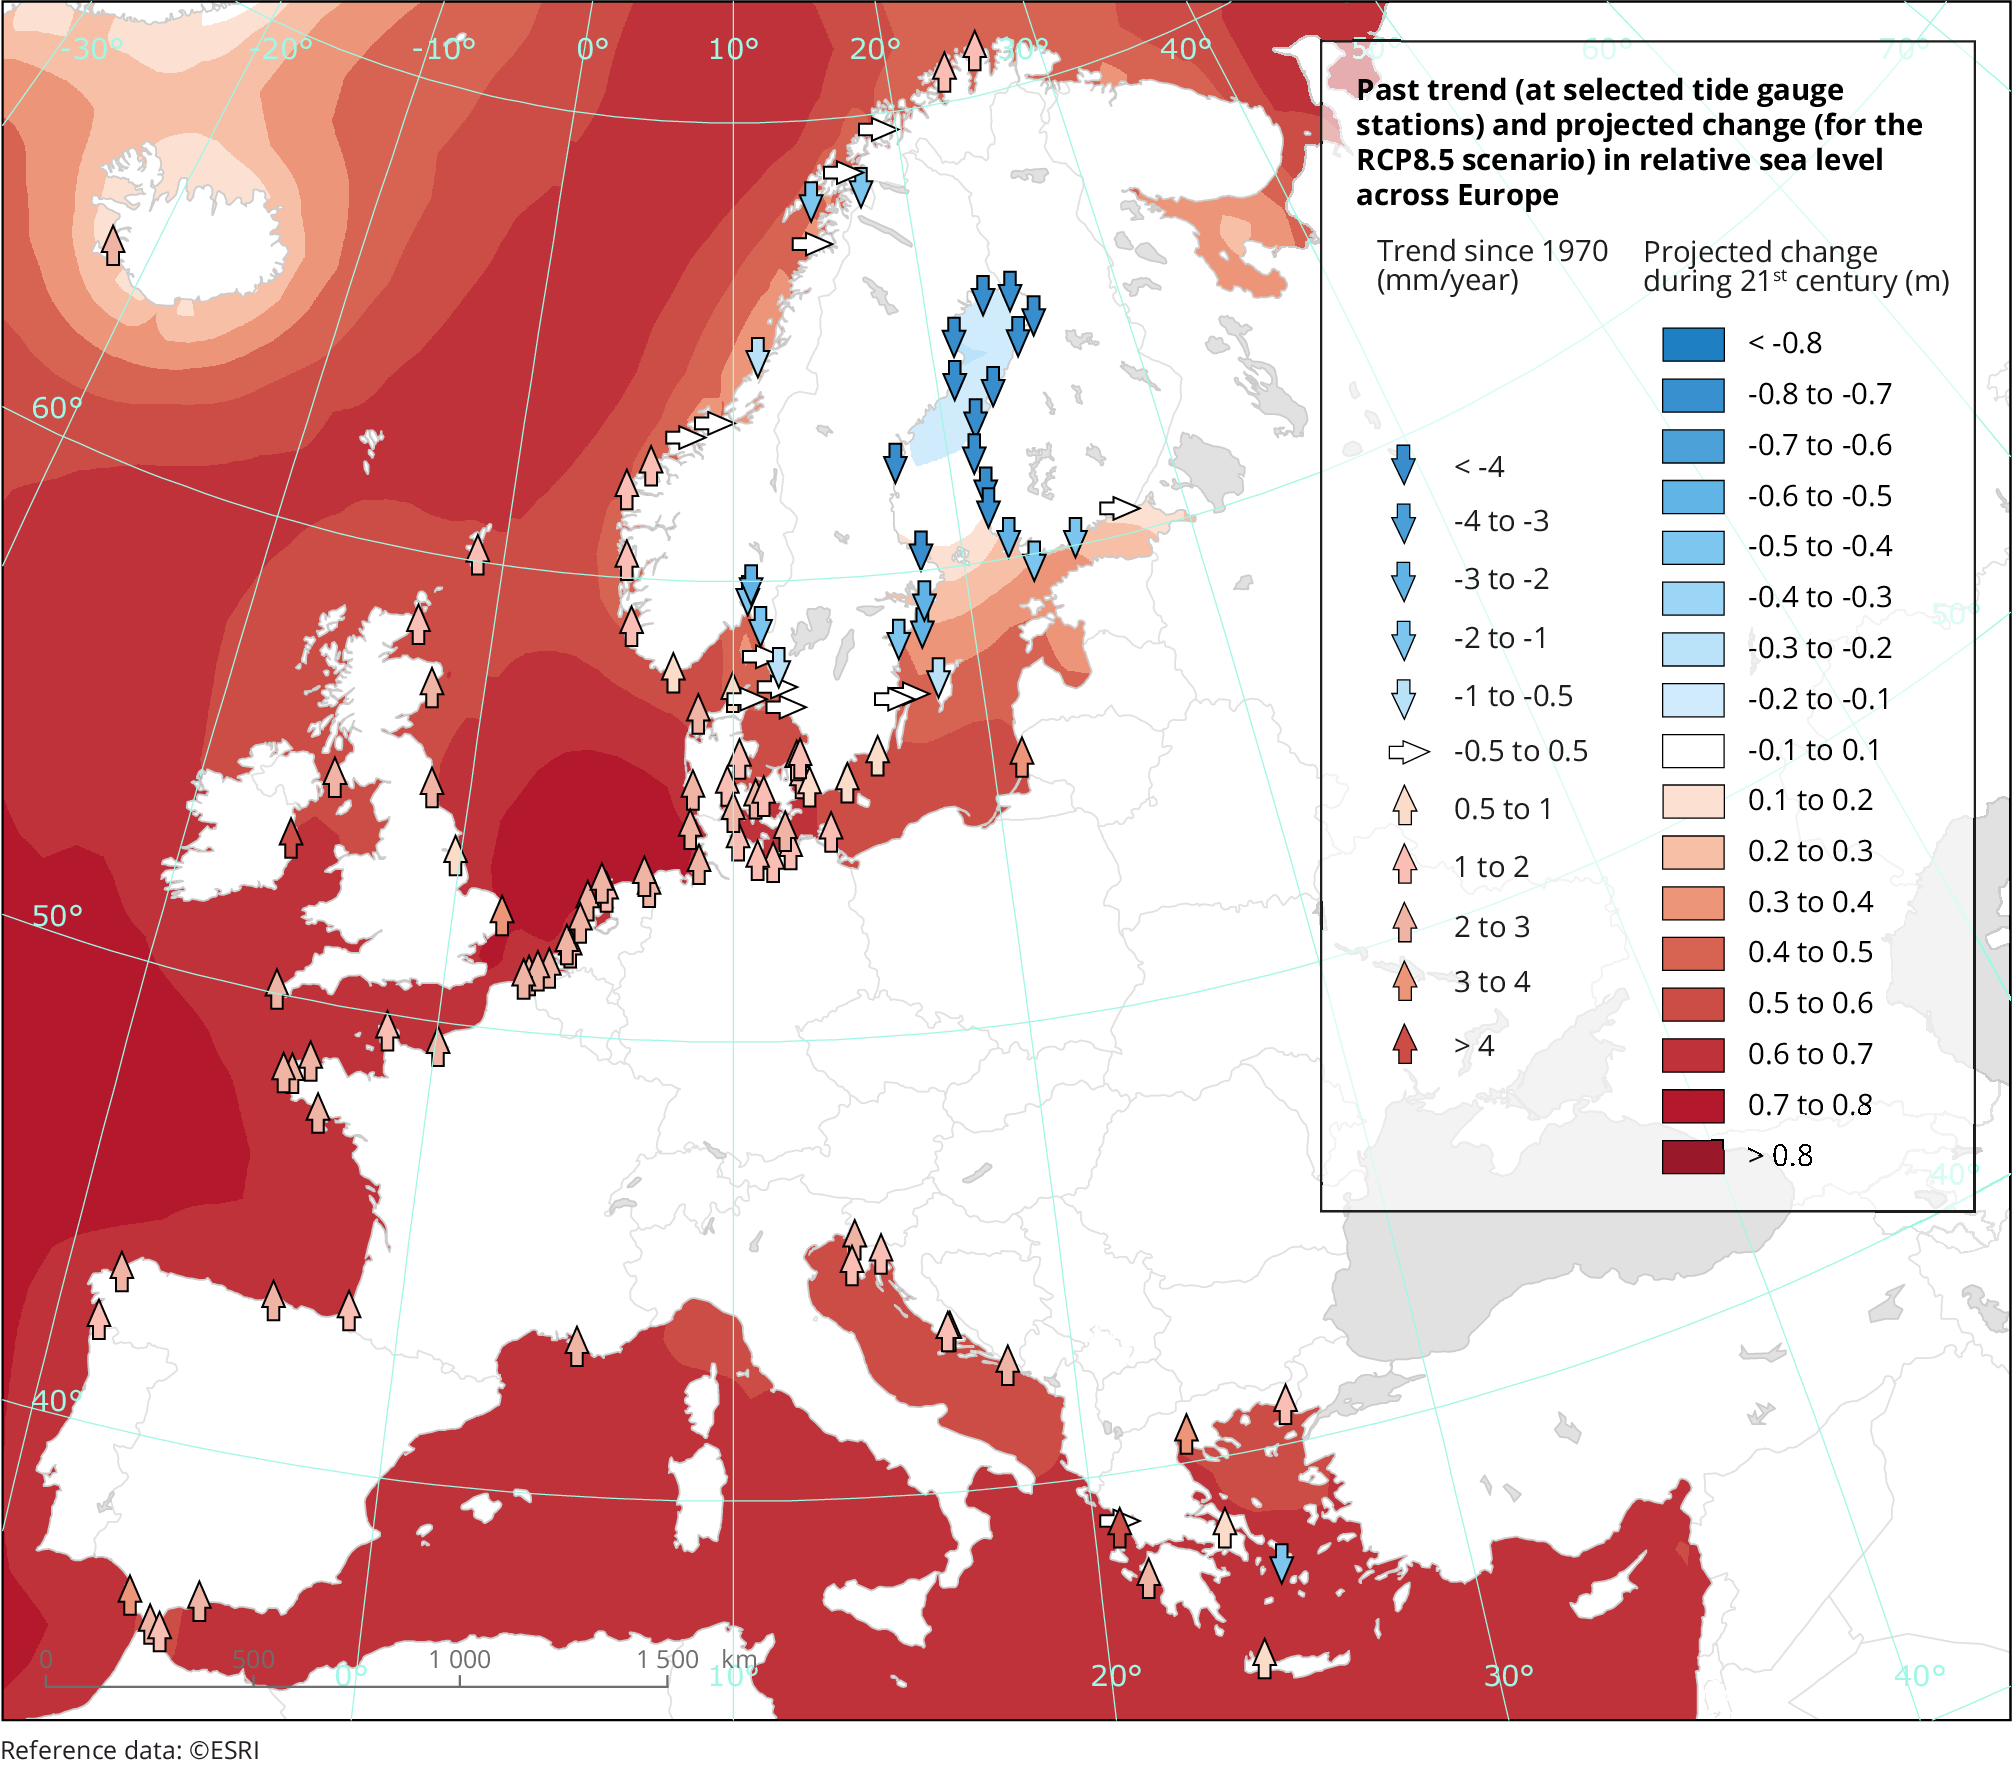 Past trend and projected change in relative sea level across Europe